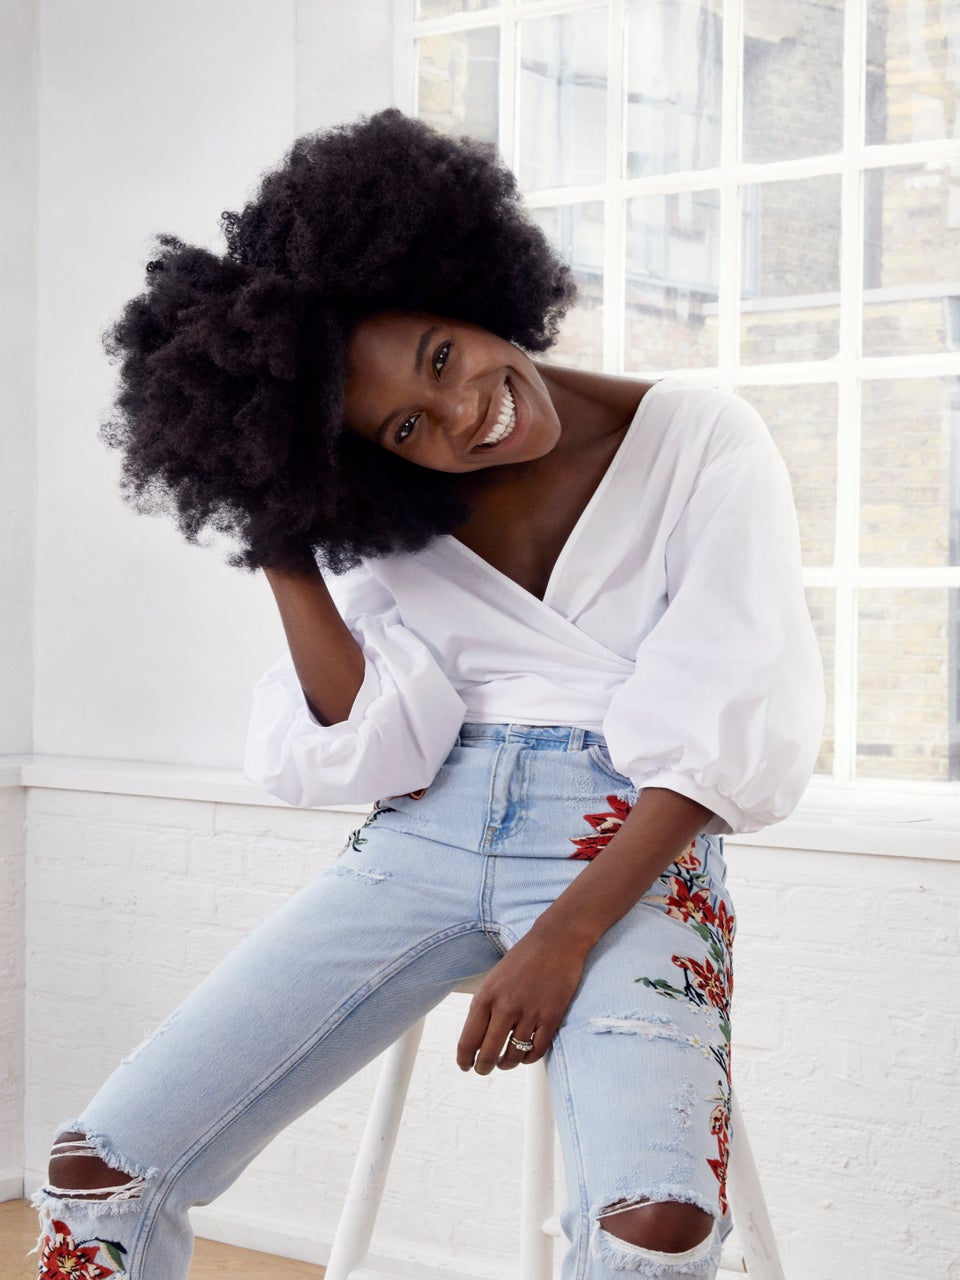 Blogger Freddie Harrel's Natural Extension Line Is Just What Black Women Need